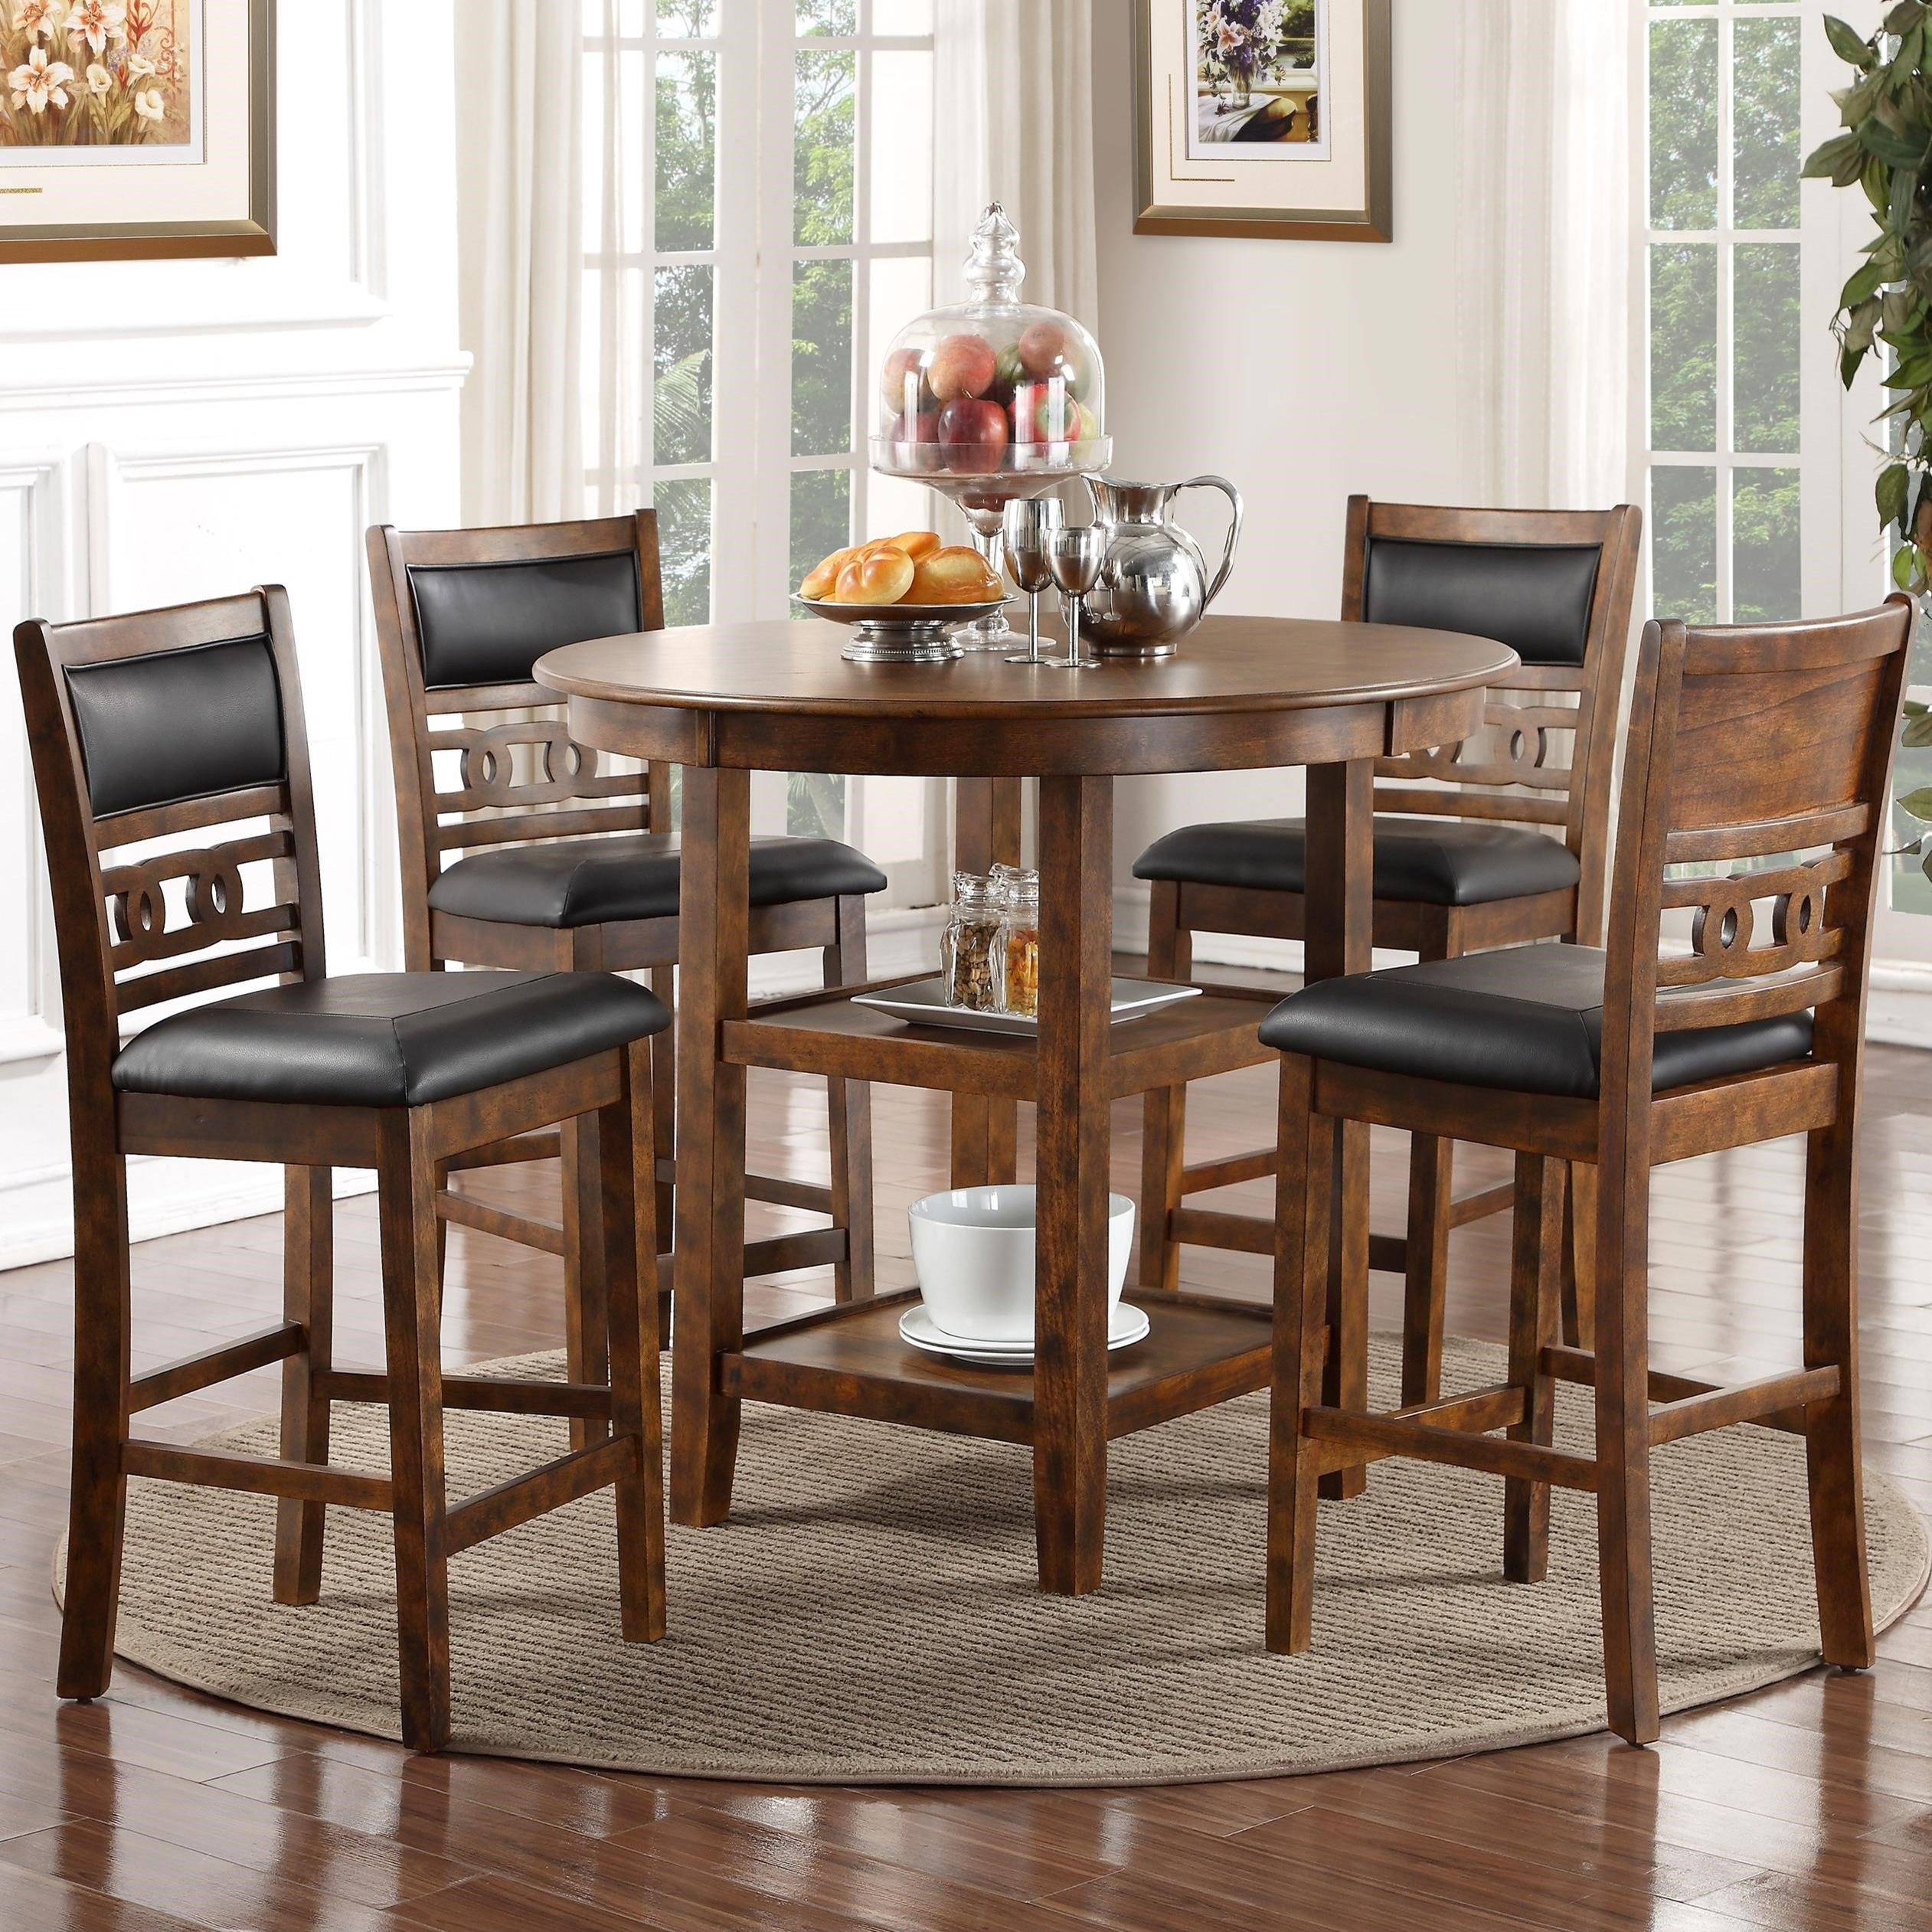 New classic gia d1701 52s brn counter height dining table for Classic dining tables and chairs